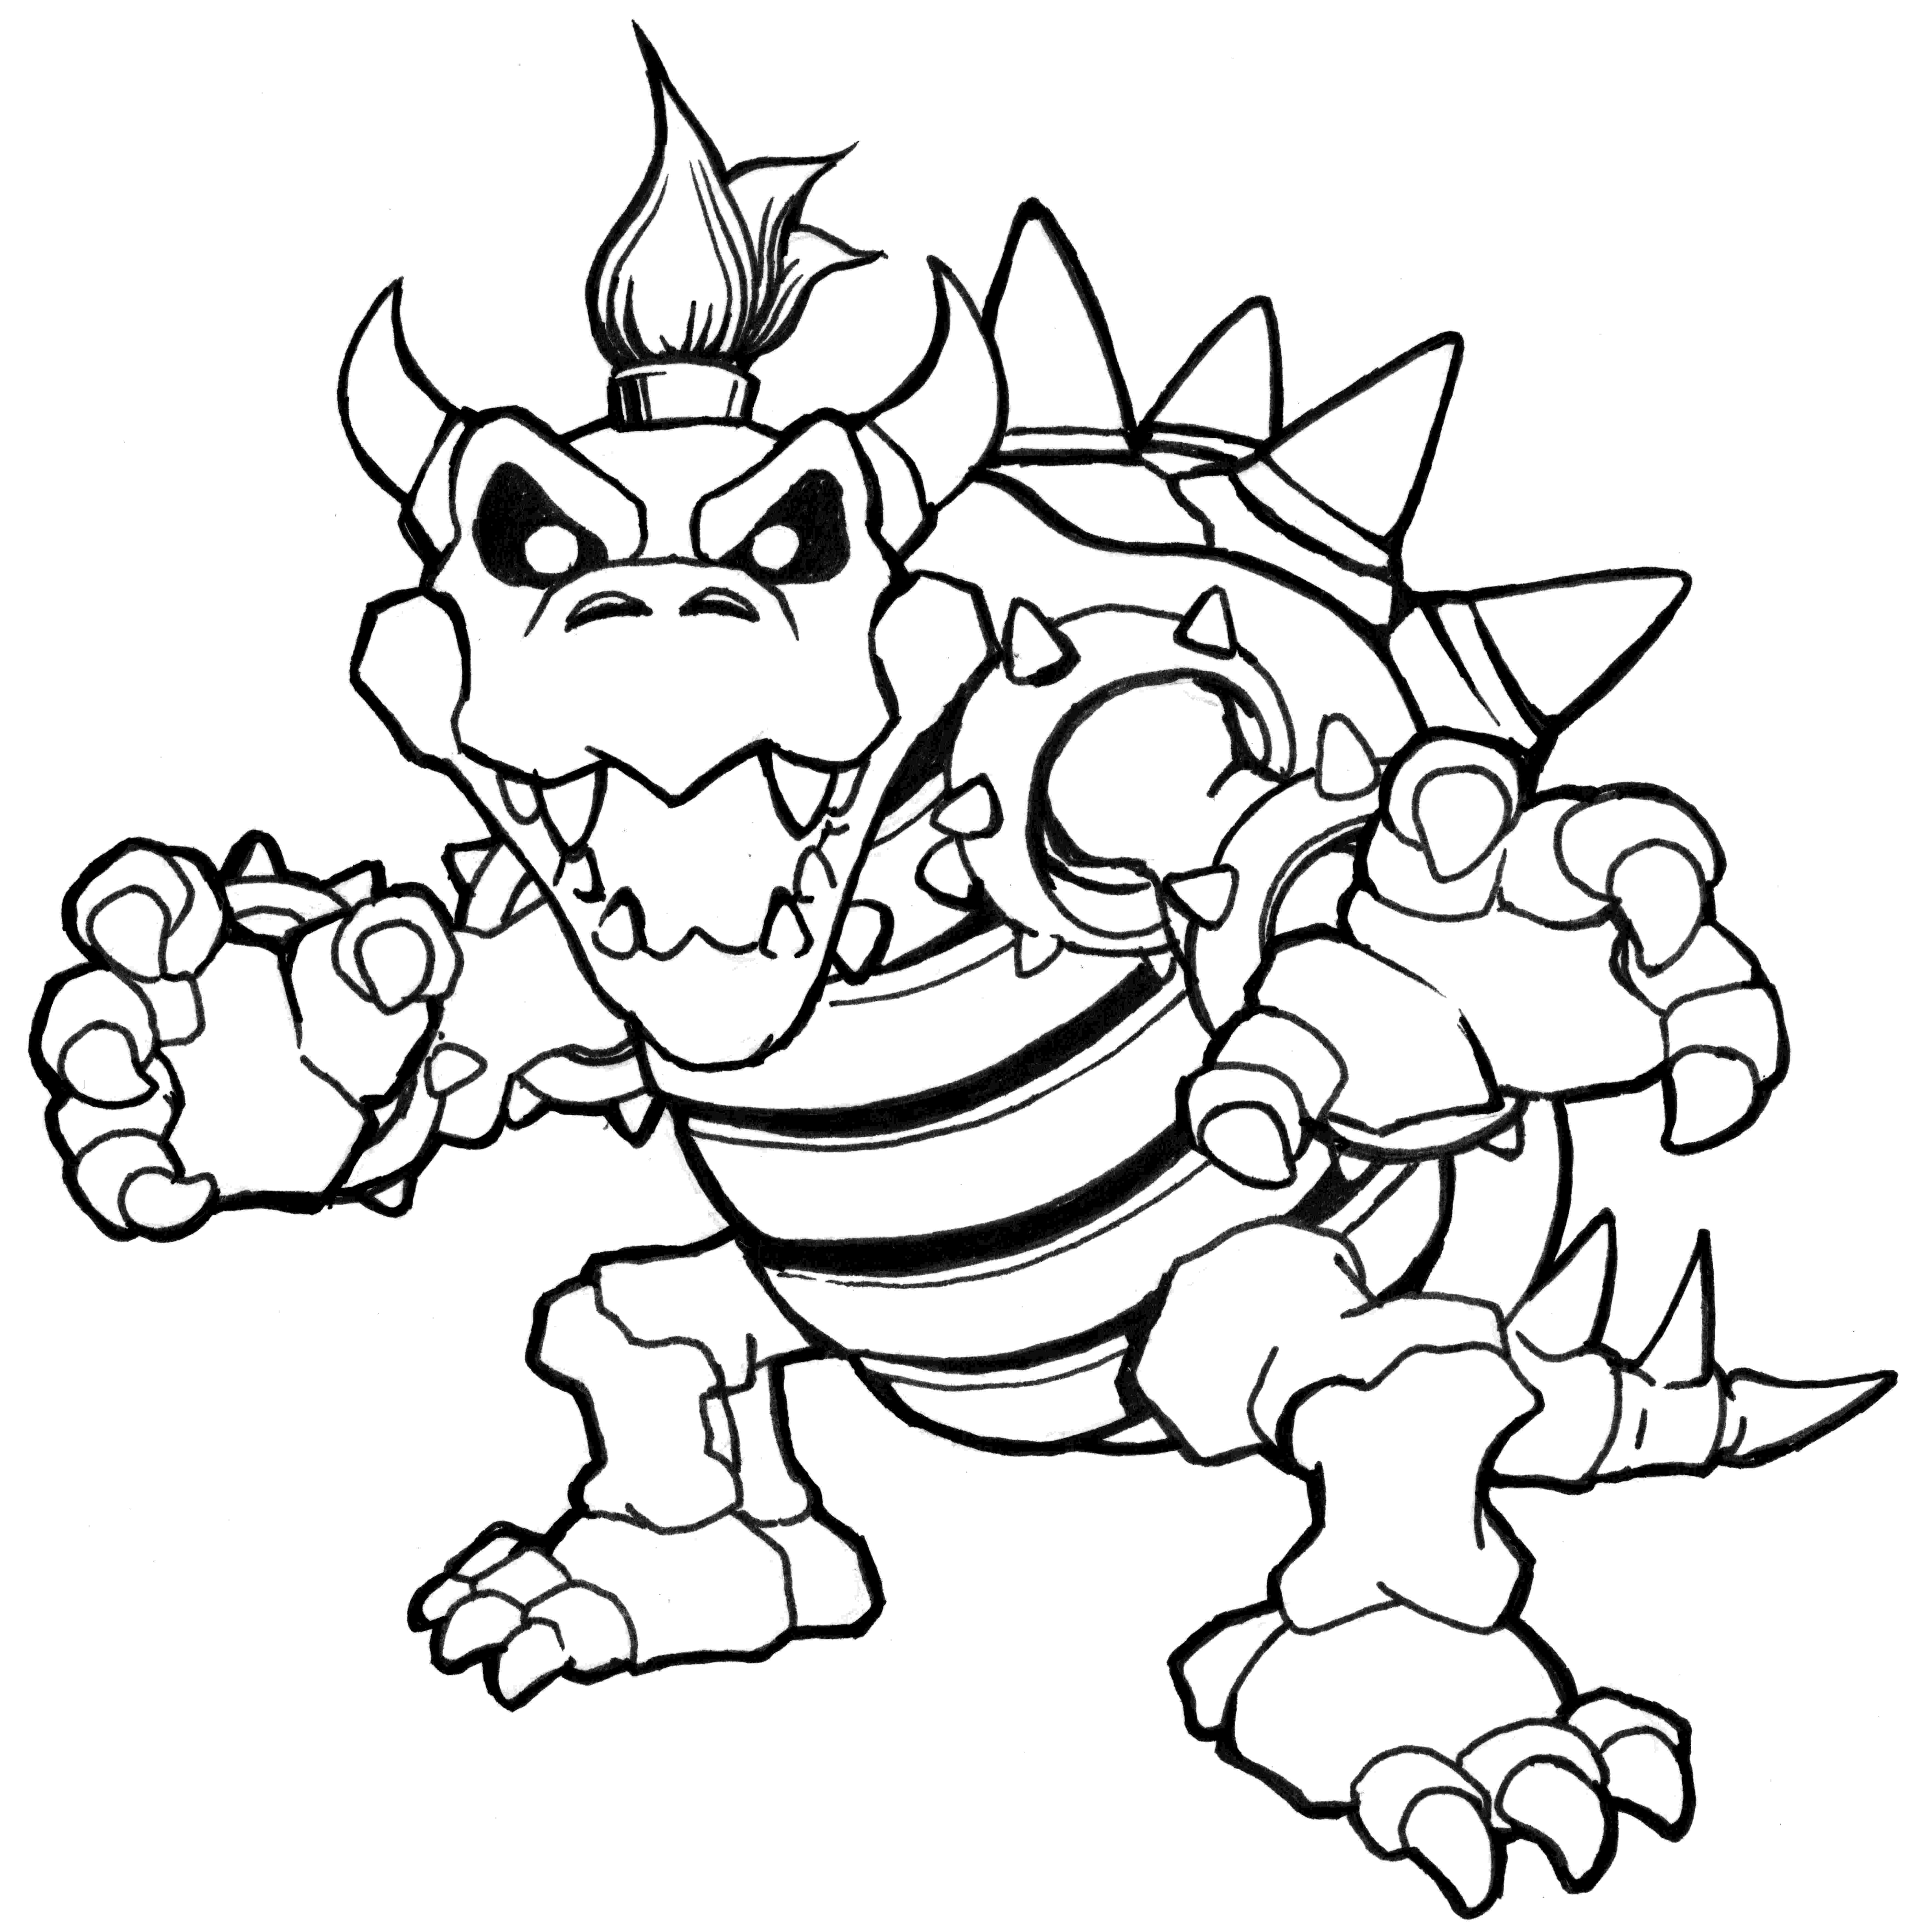 bowser picture new coloring page bowser vanquish studio bowser picture